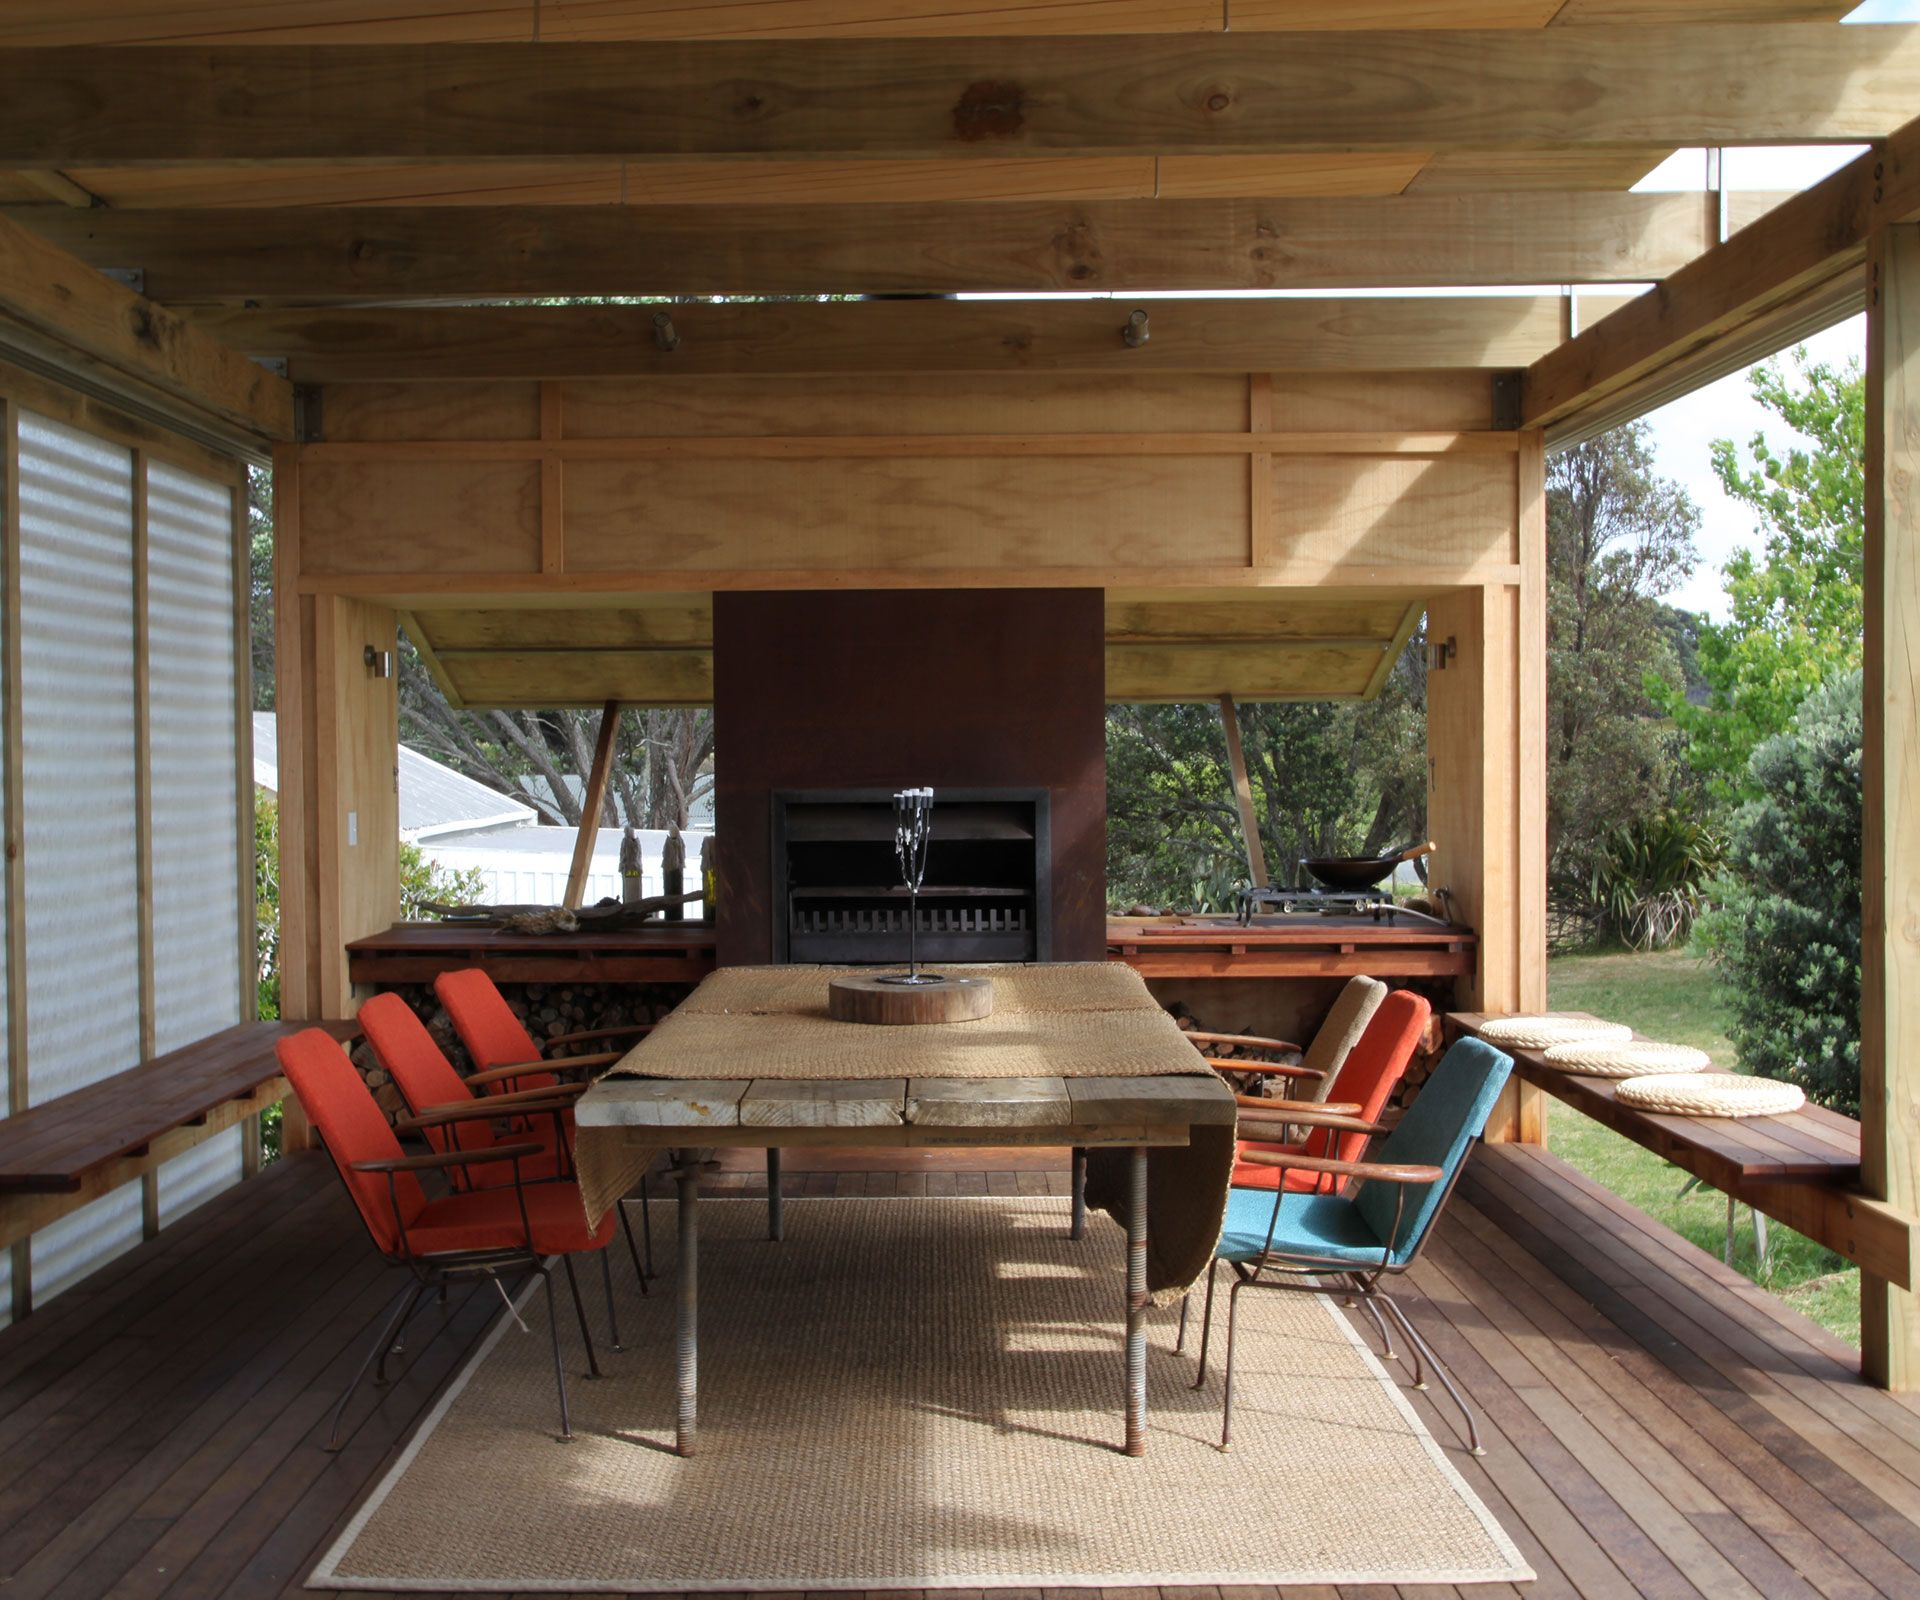 Be in to win an outdoor furniture package worth 5000